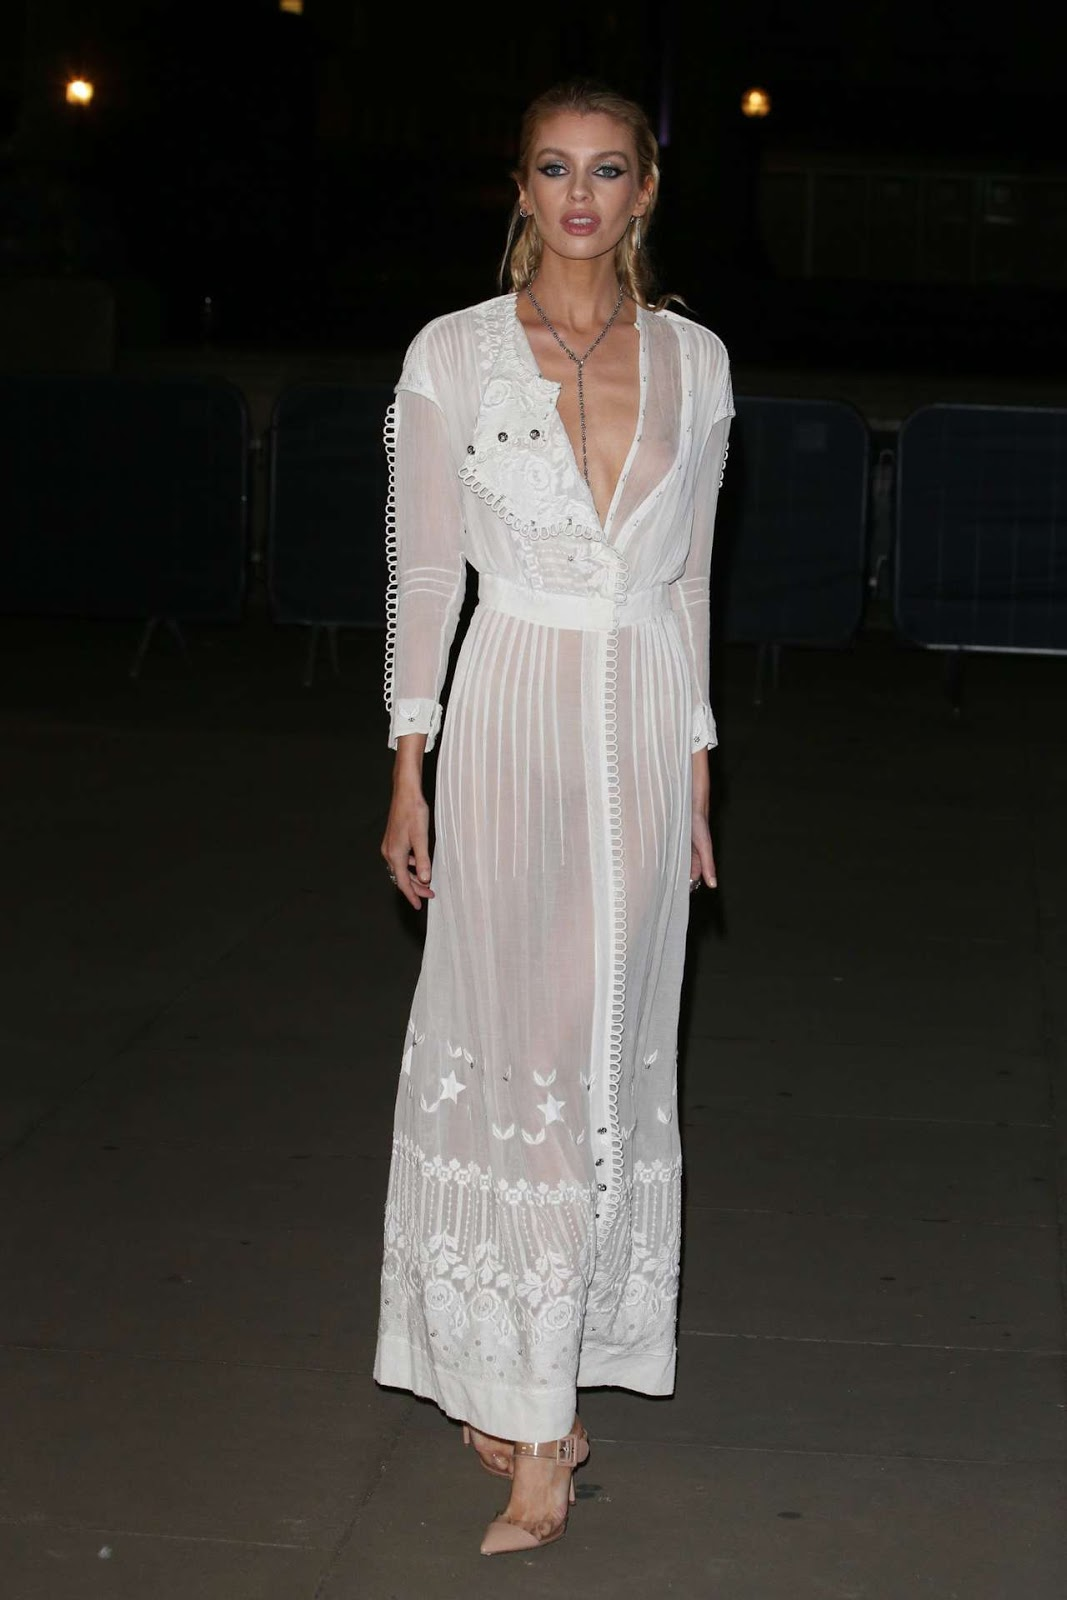 Stella Maxwell bares nipple in sheer gown at the Fashion For Relief Charity Party at LFW